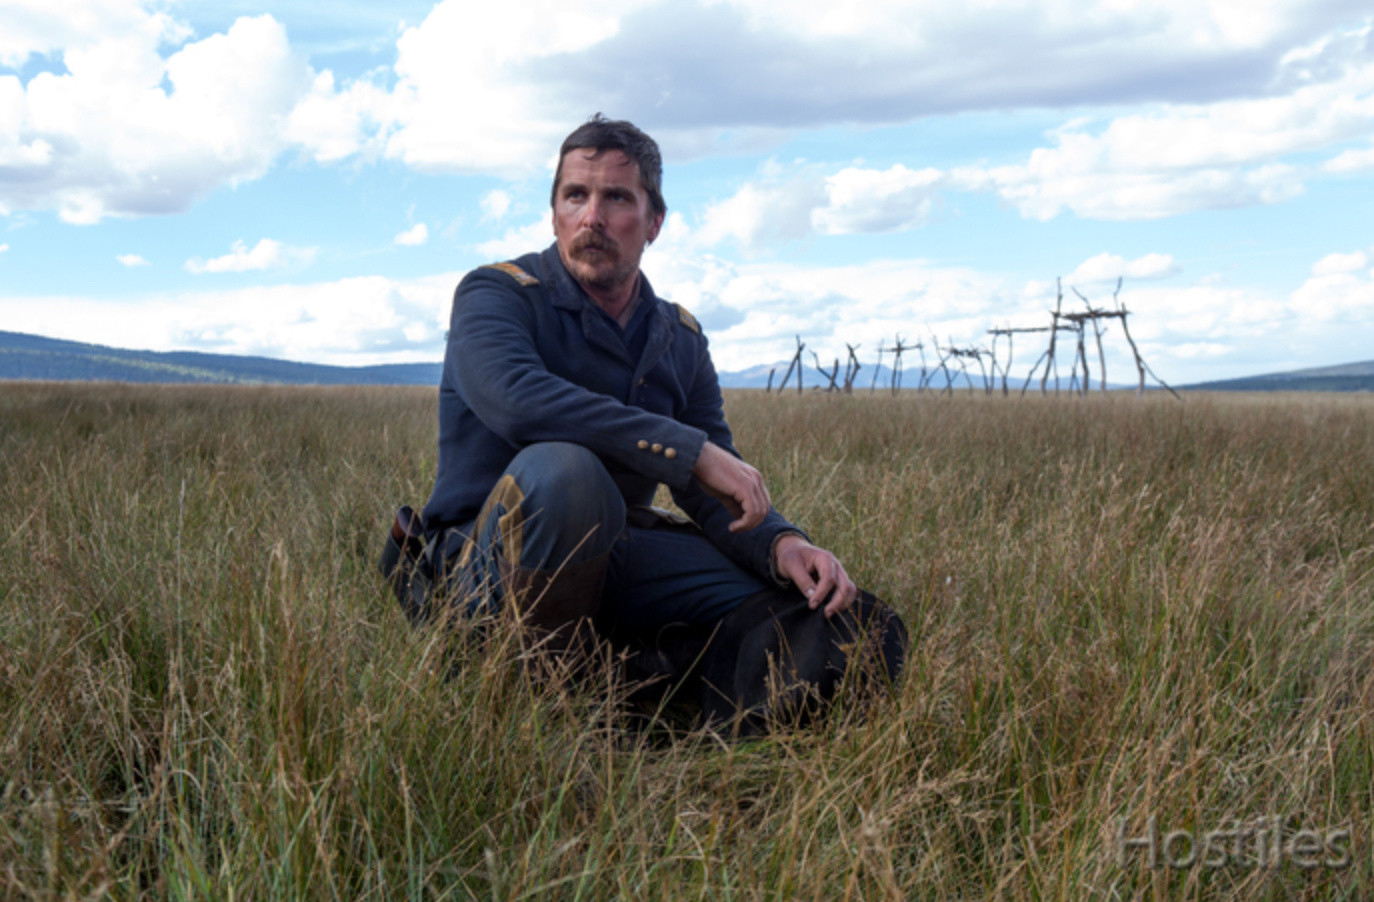 Hostiles. 2017. USA. Directed by Scott Cooper